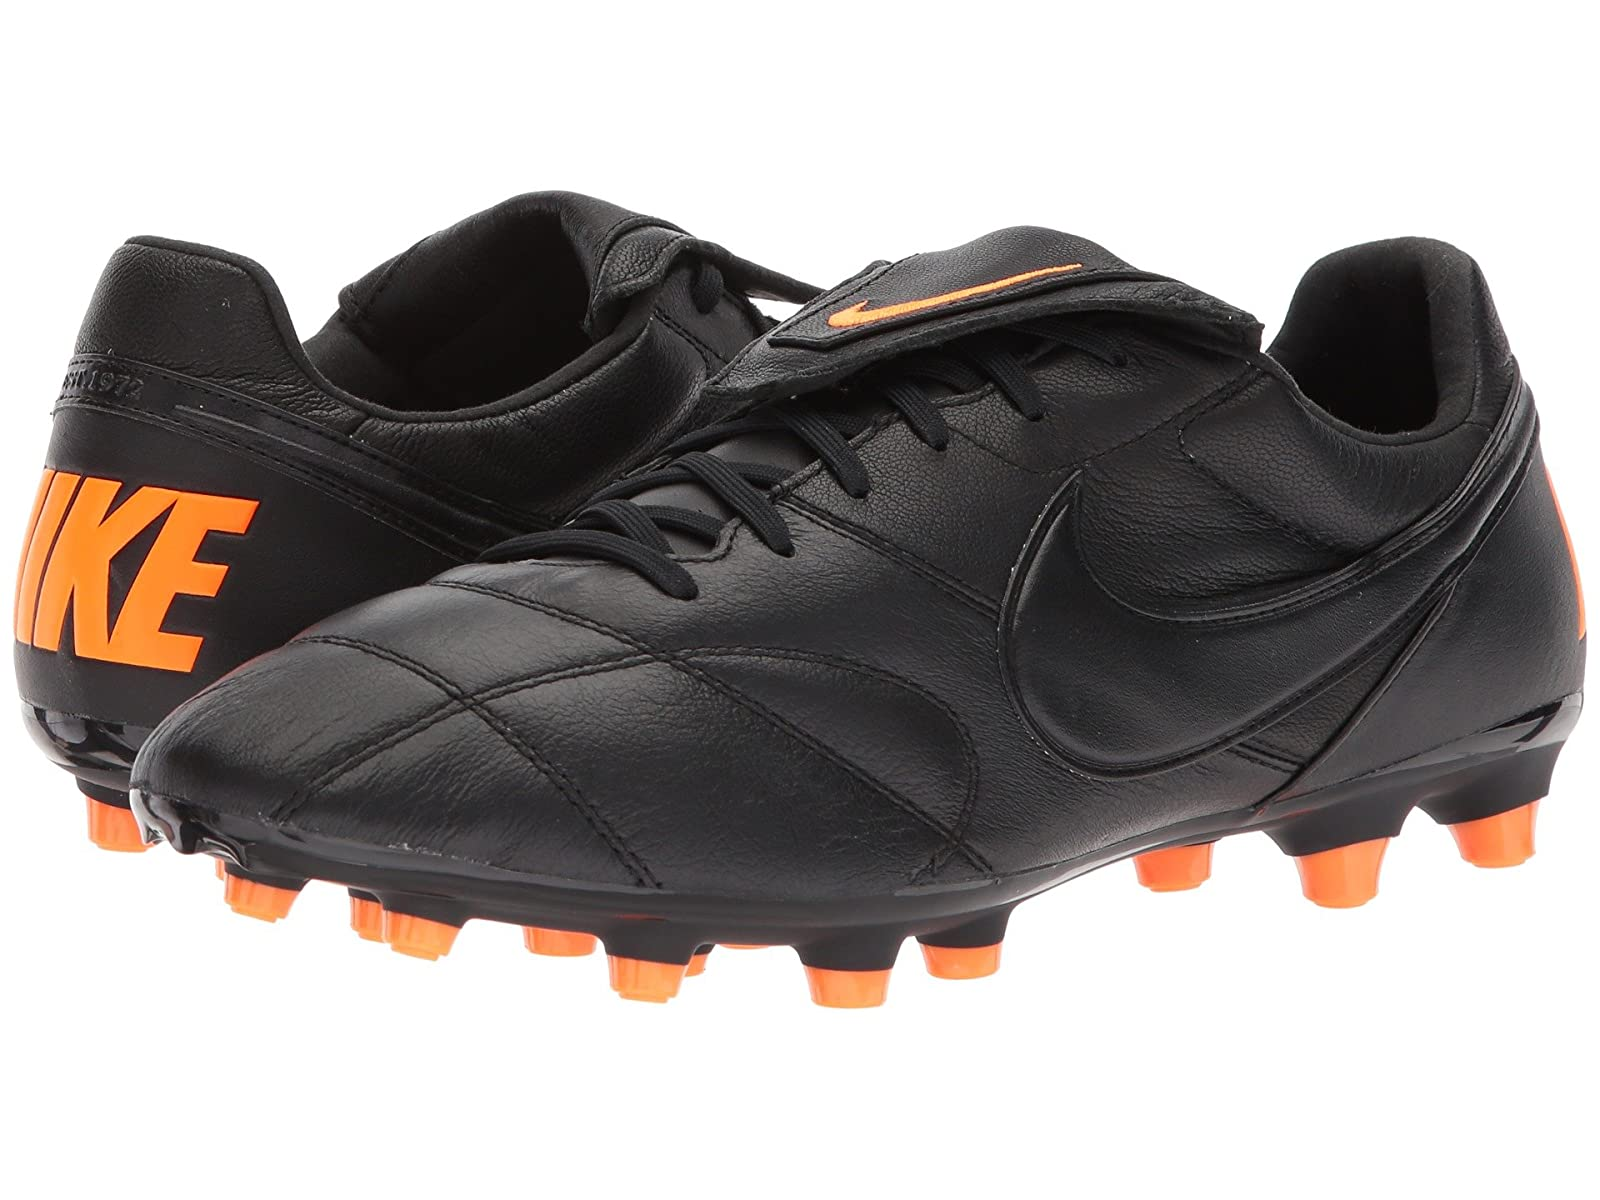 Nike Premier II FGCheap and distinctive eye-catching shoes